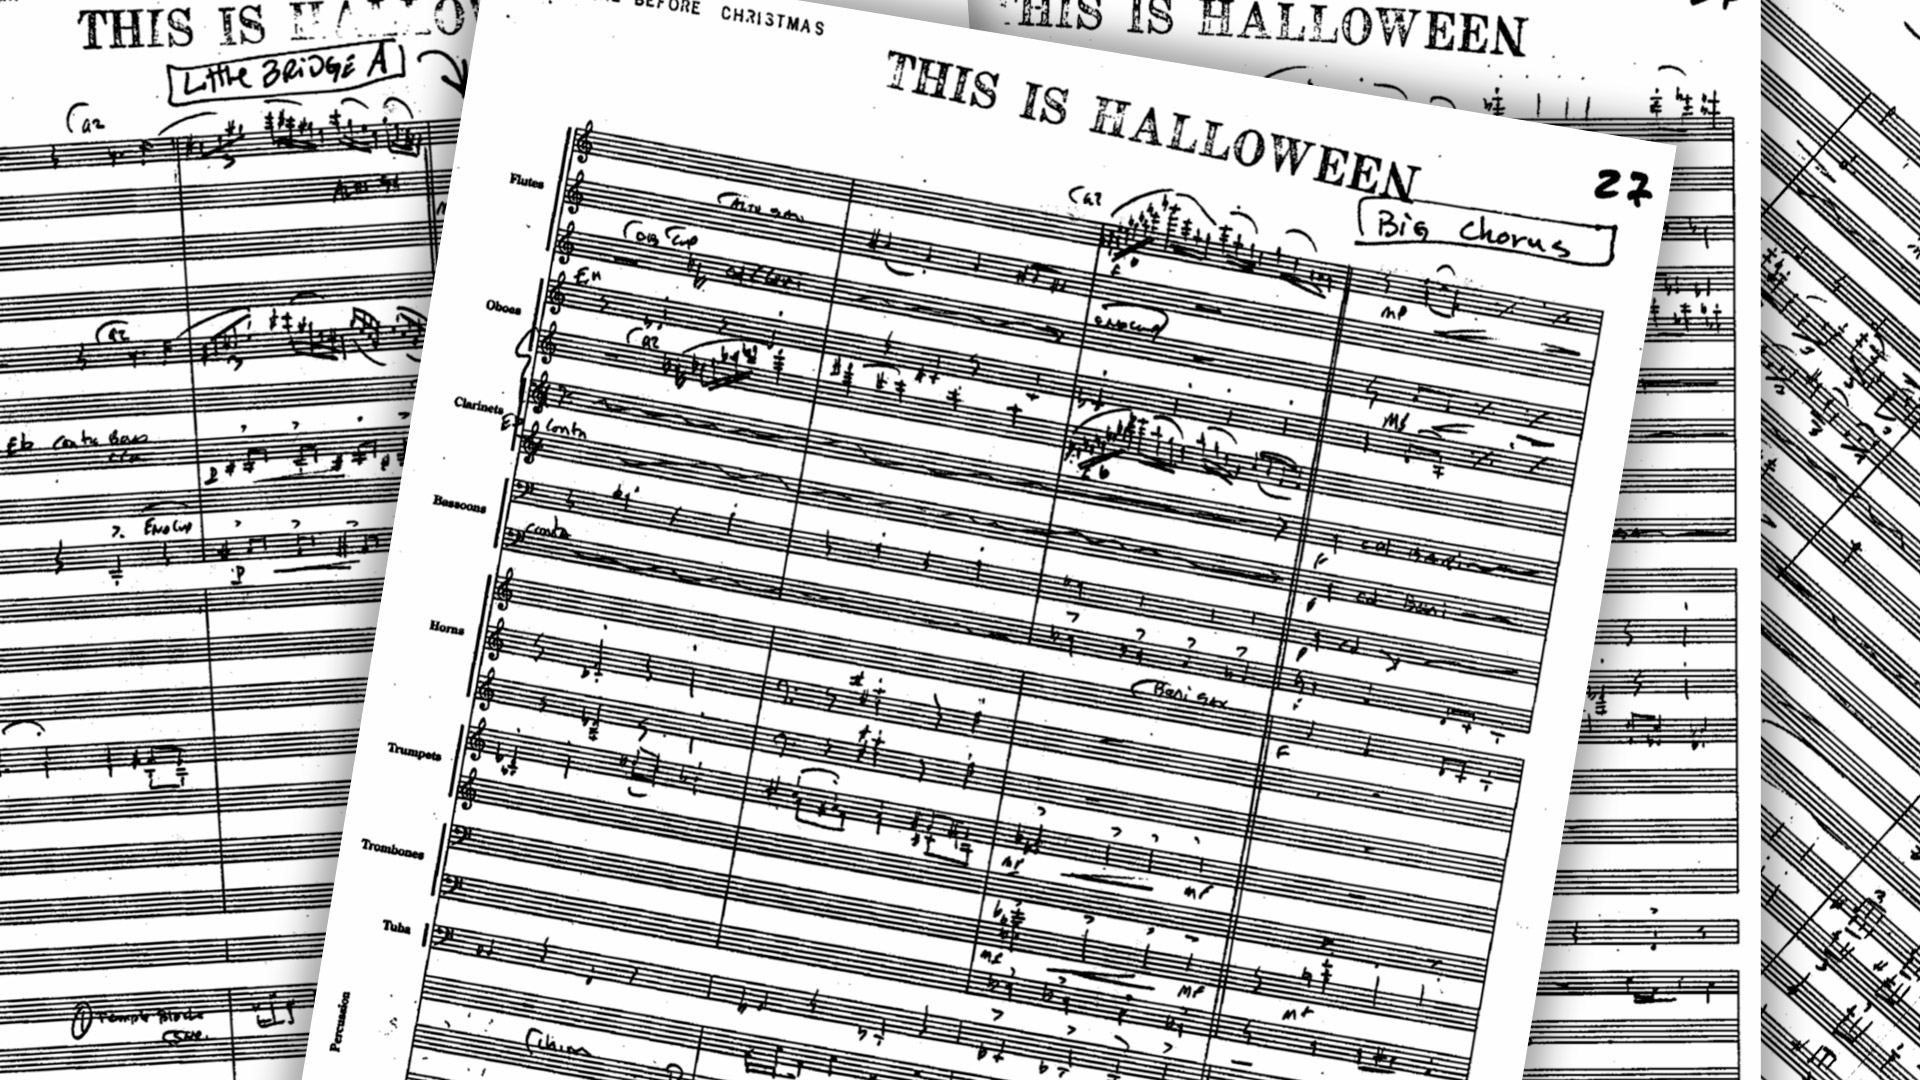 This Is Halloween score music with all the instruments.